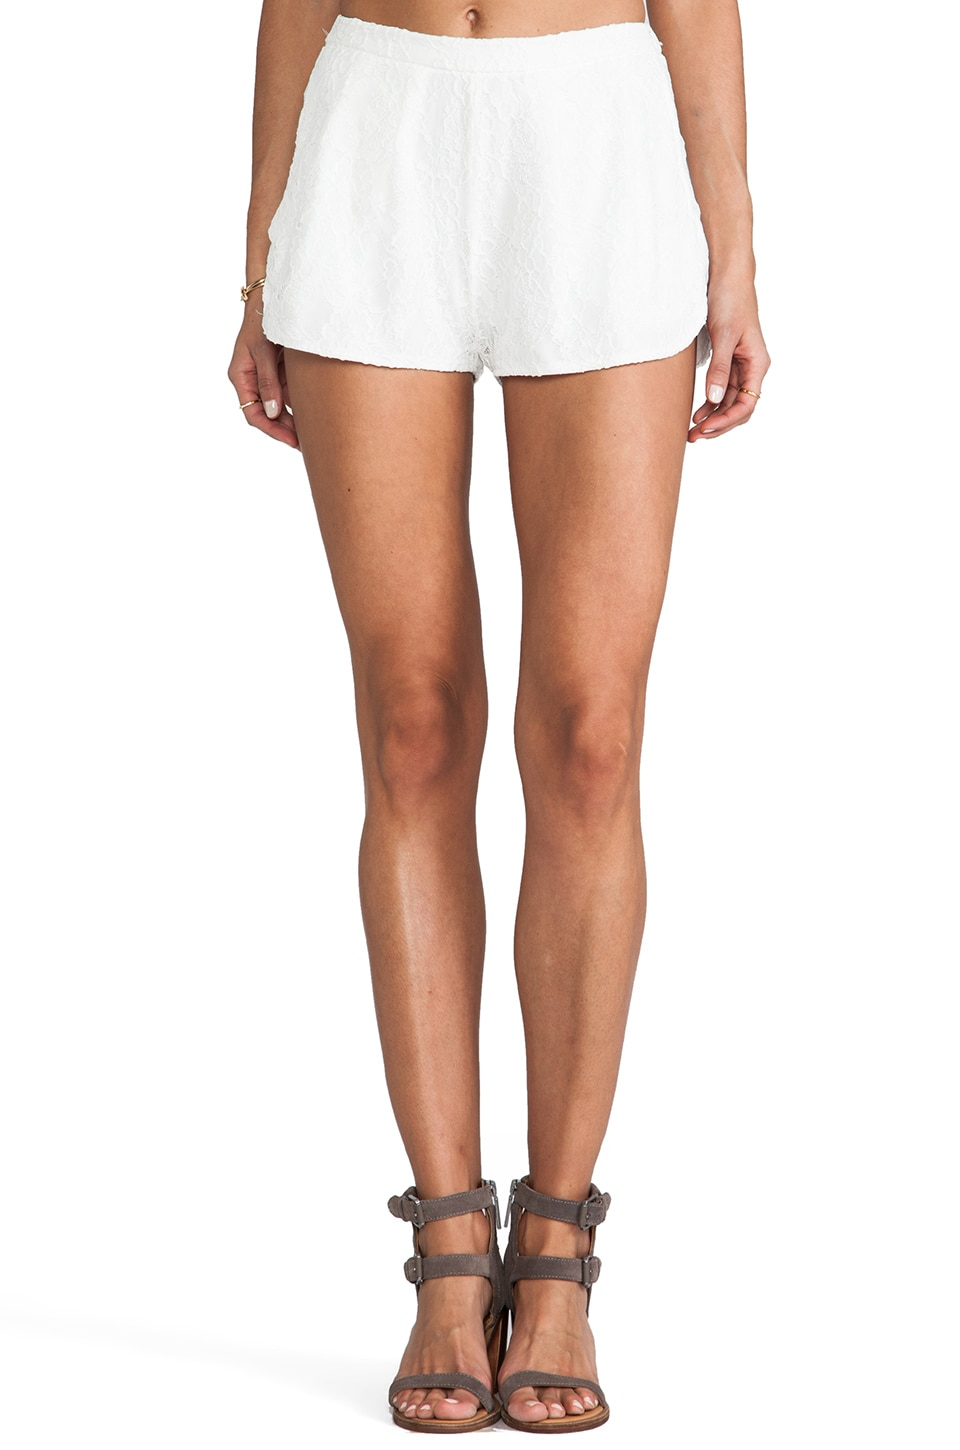 Lovers + Friends Wood Stock Lace Shorts in White